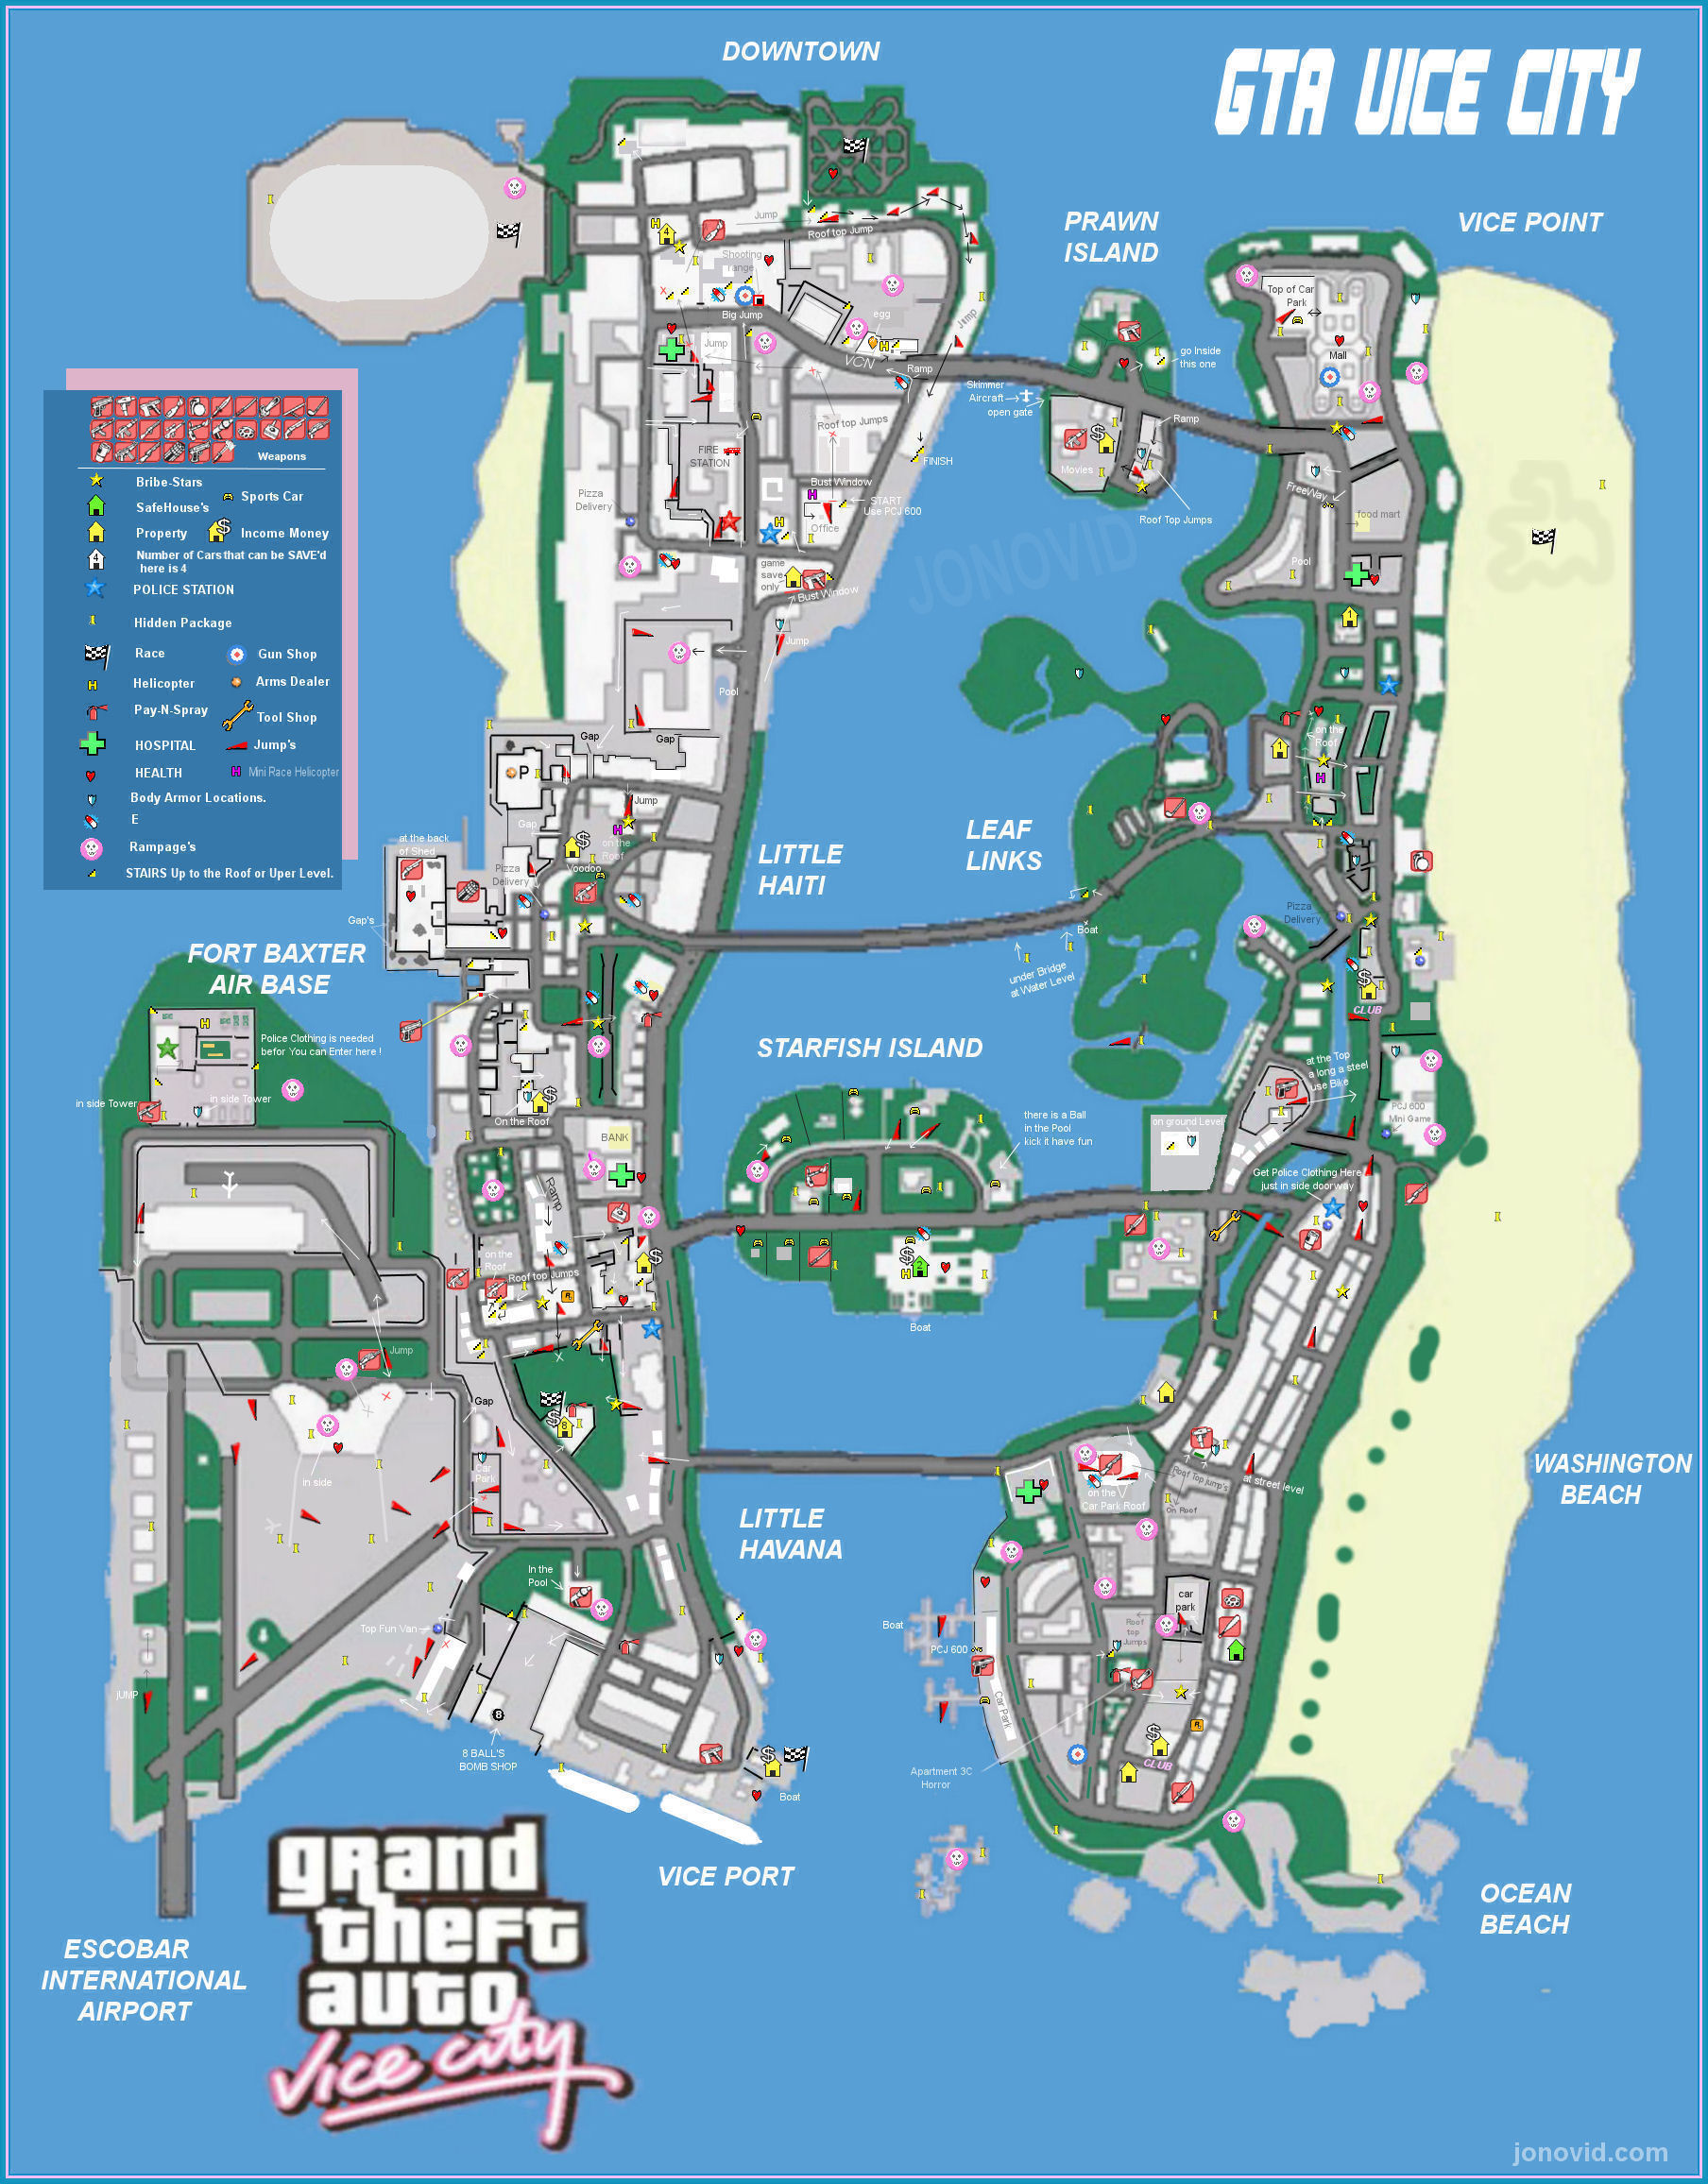 All sizes  GTA vice city Game Map  Flickr  Photo Sharing